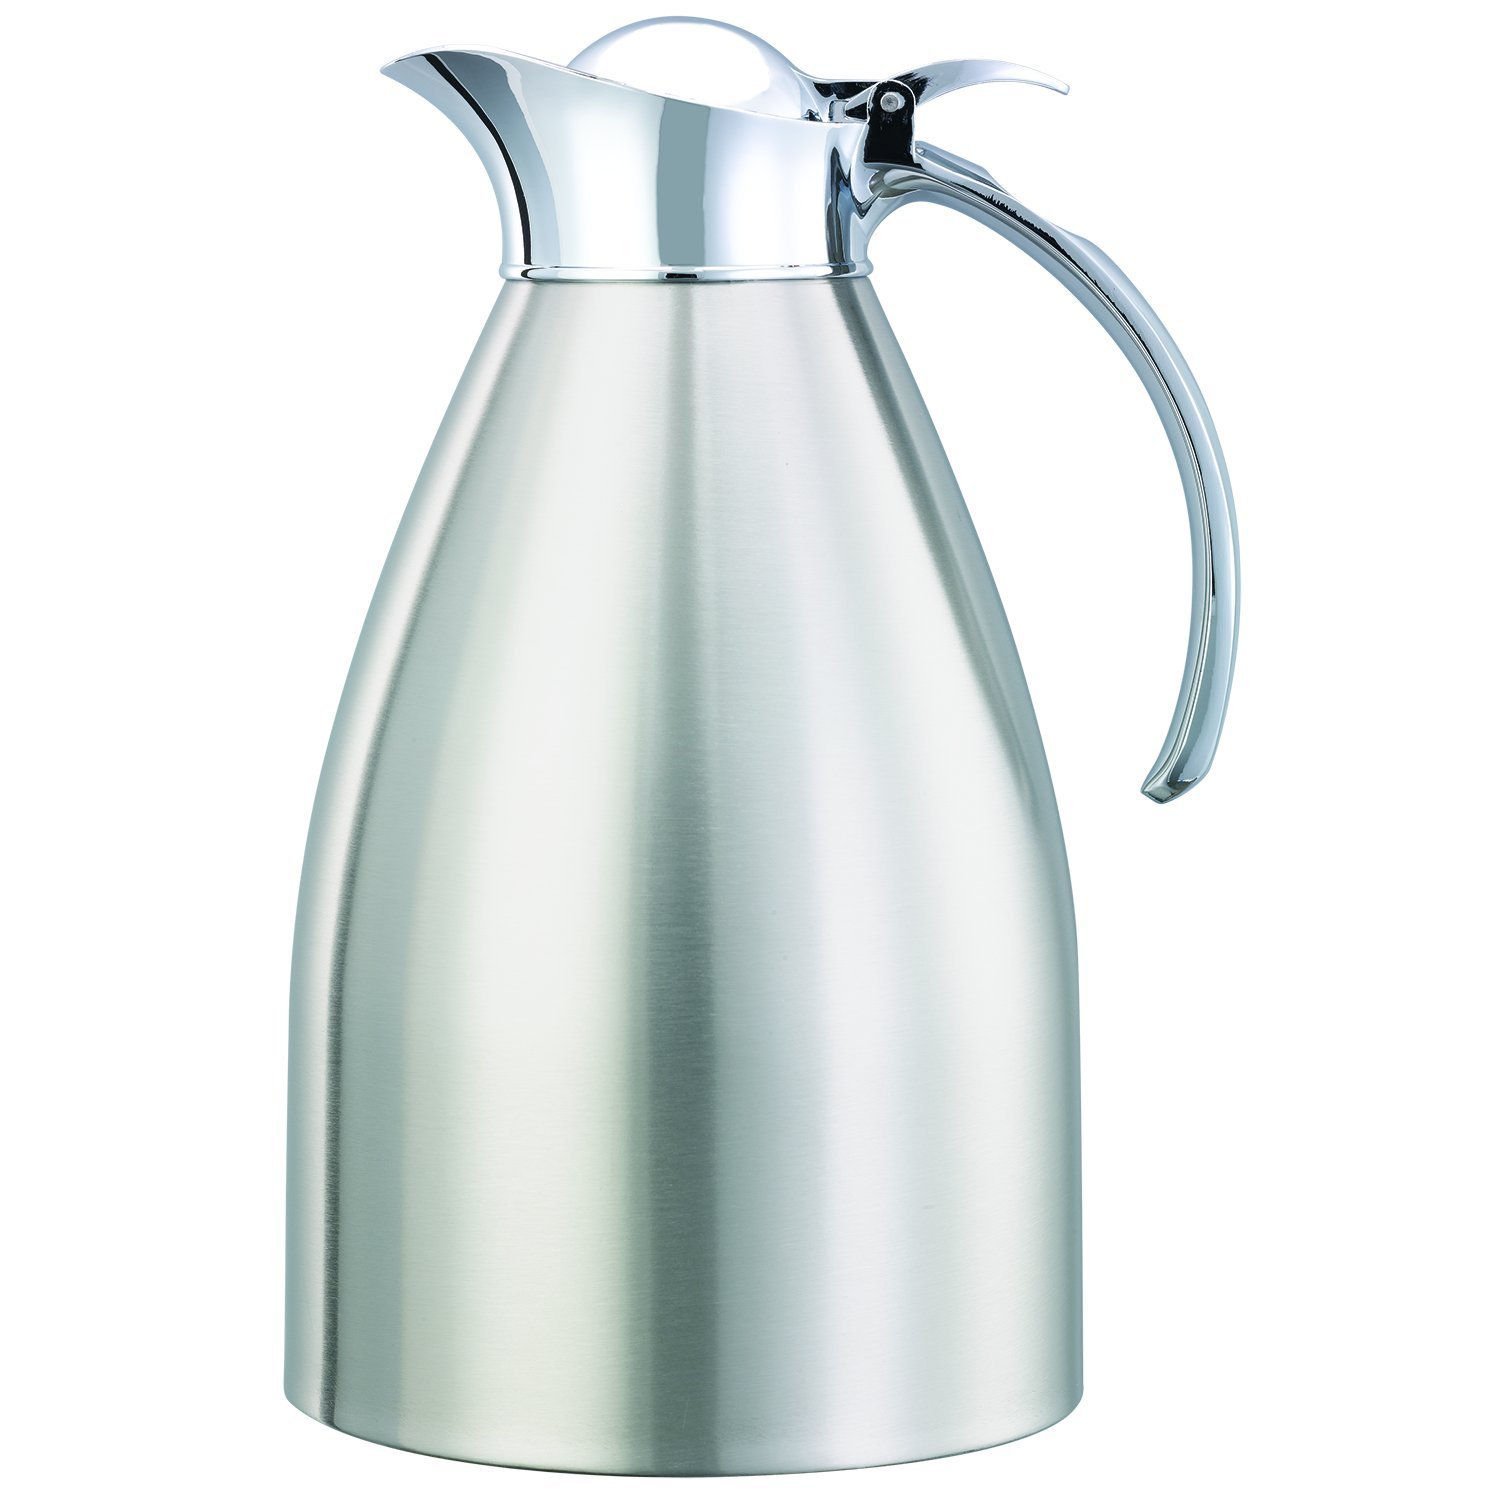 Service Ideas 98215BS Carafe, Stainless Steel Lined, Brushed Exterior, 1.5 L